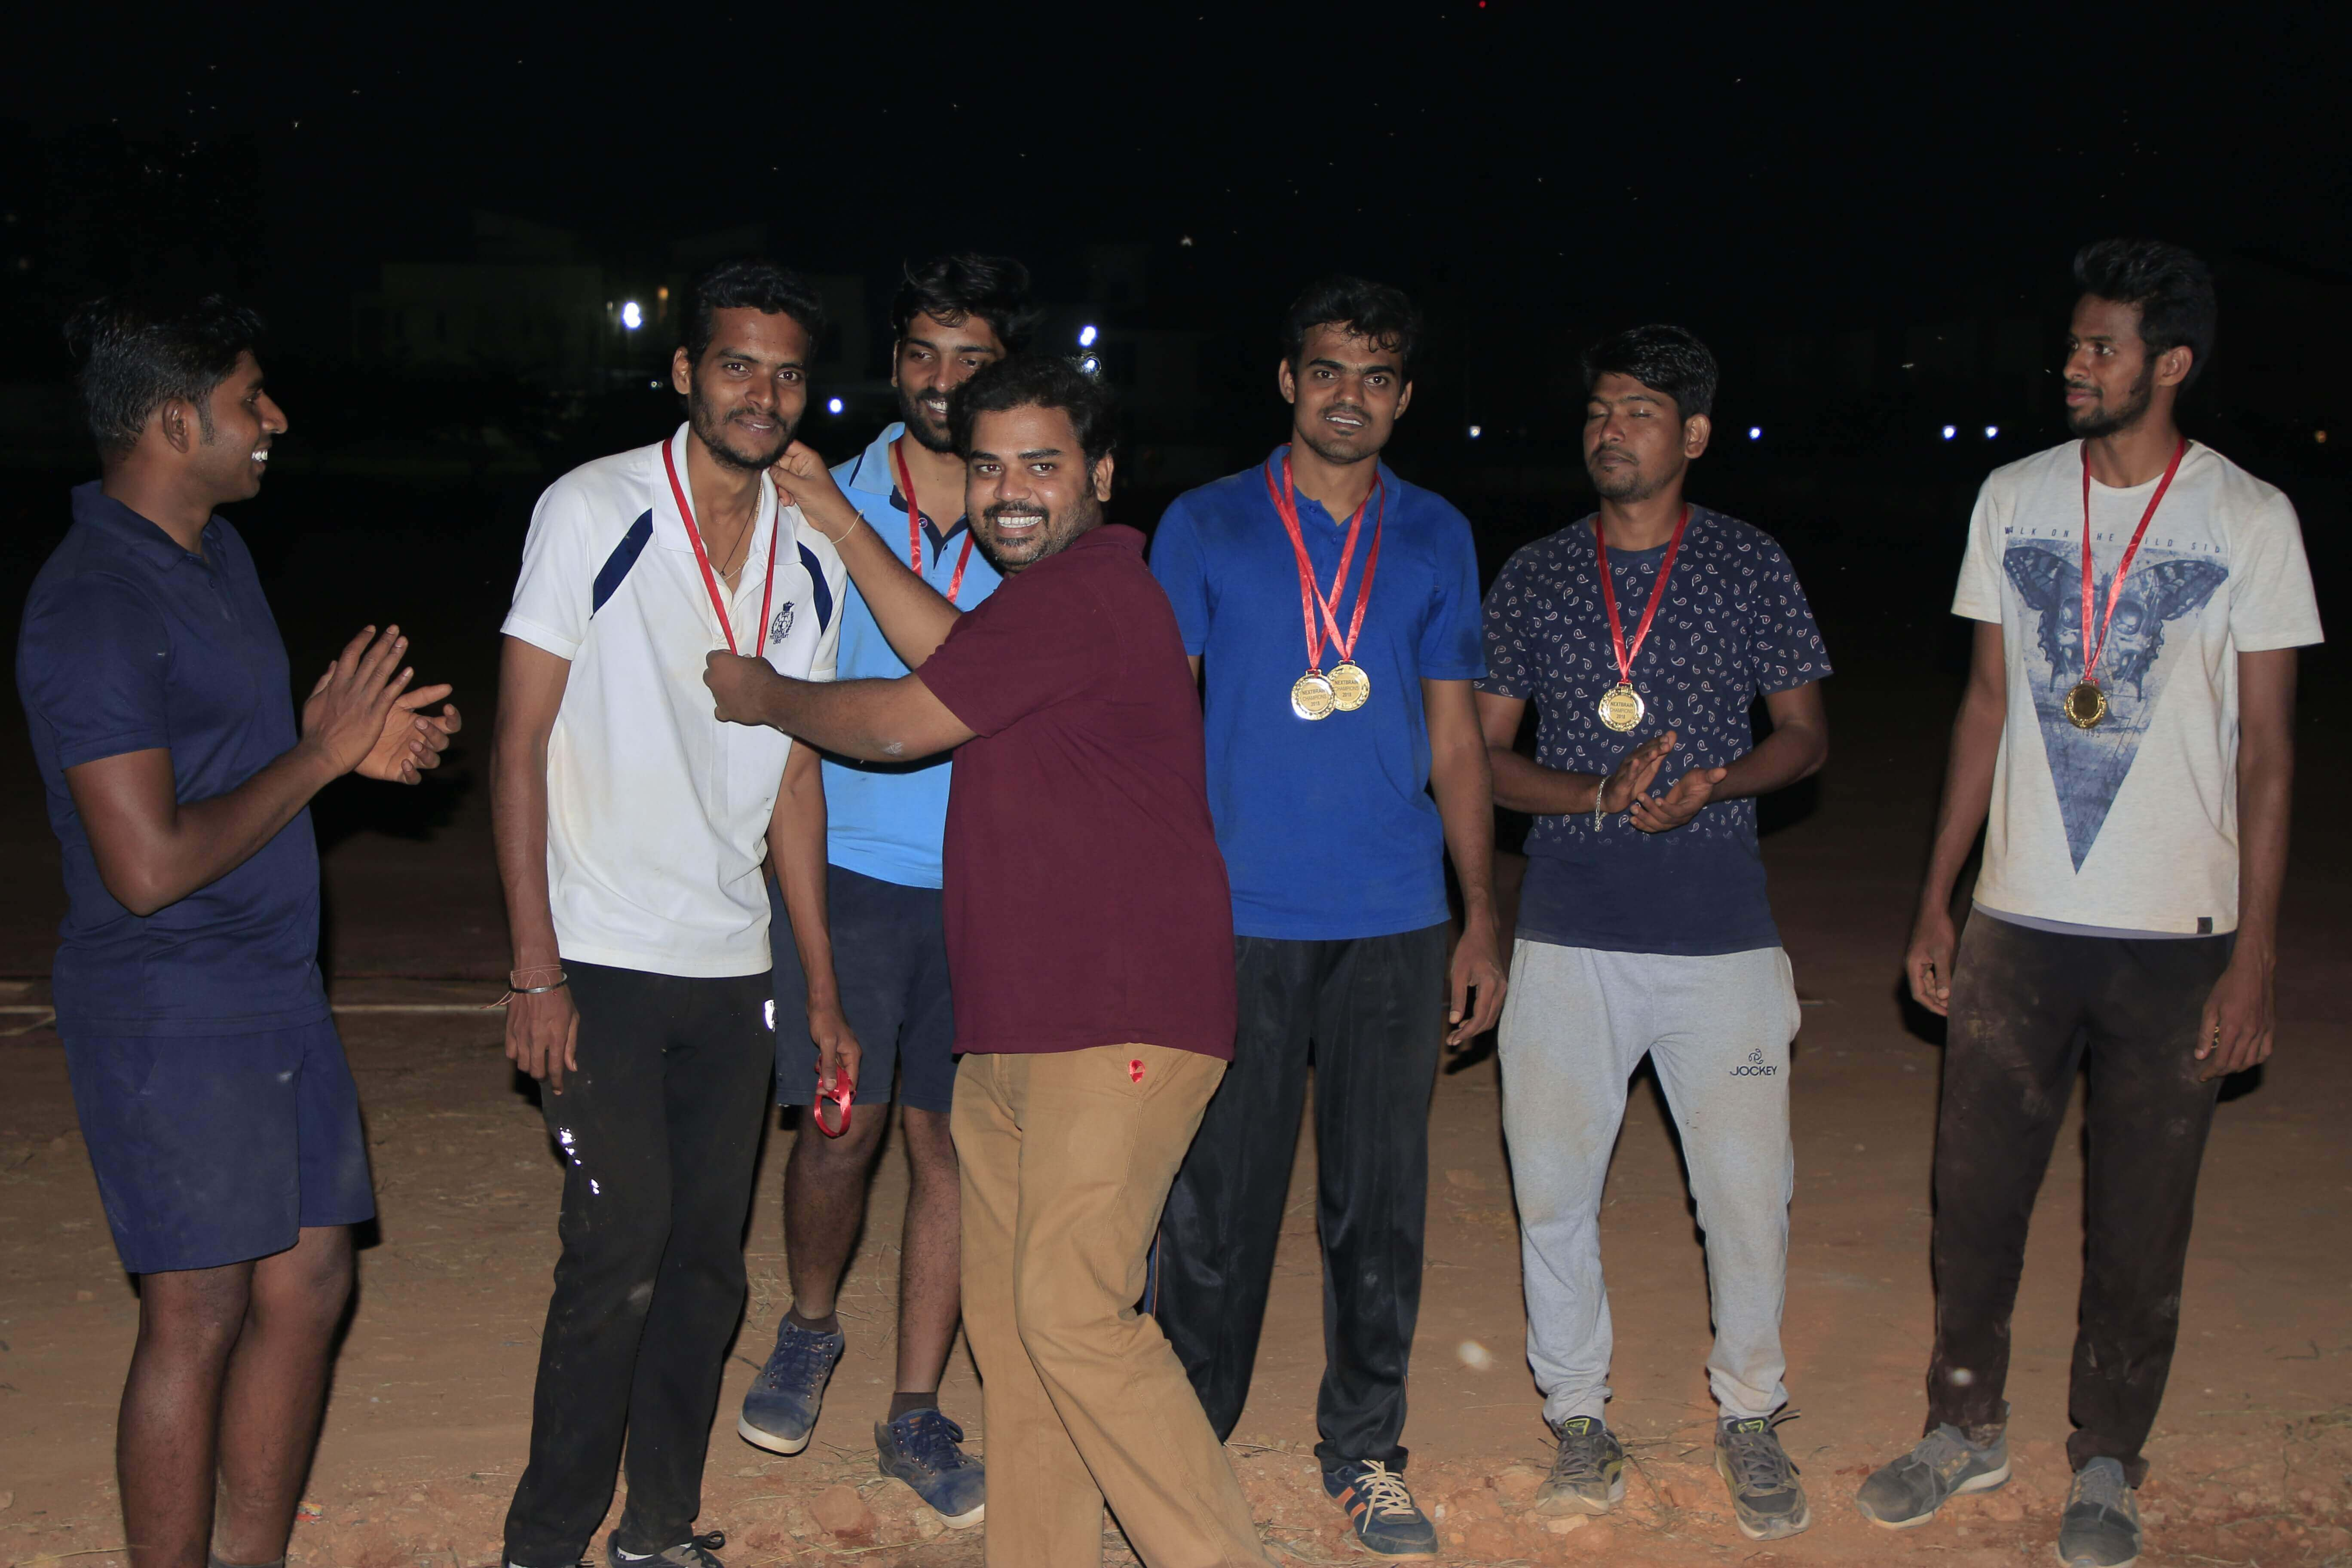 Volleyball winner nextbrain 2018 Champions